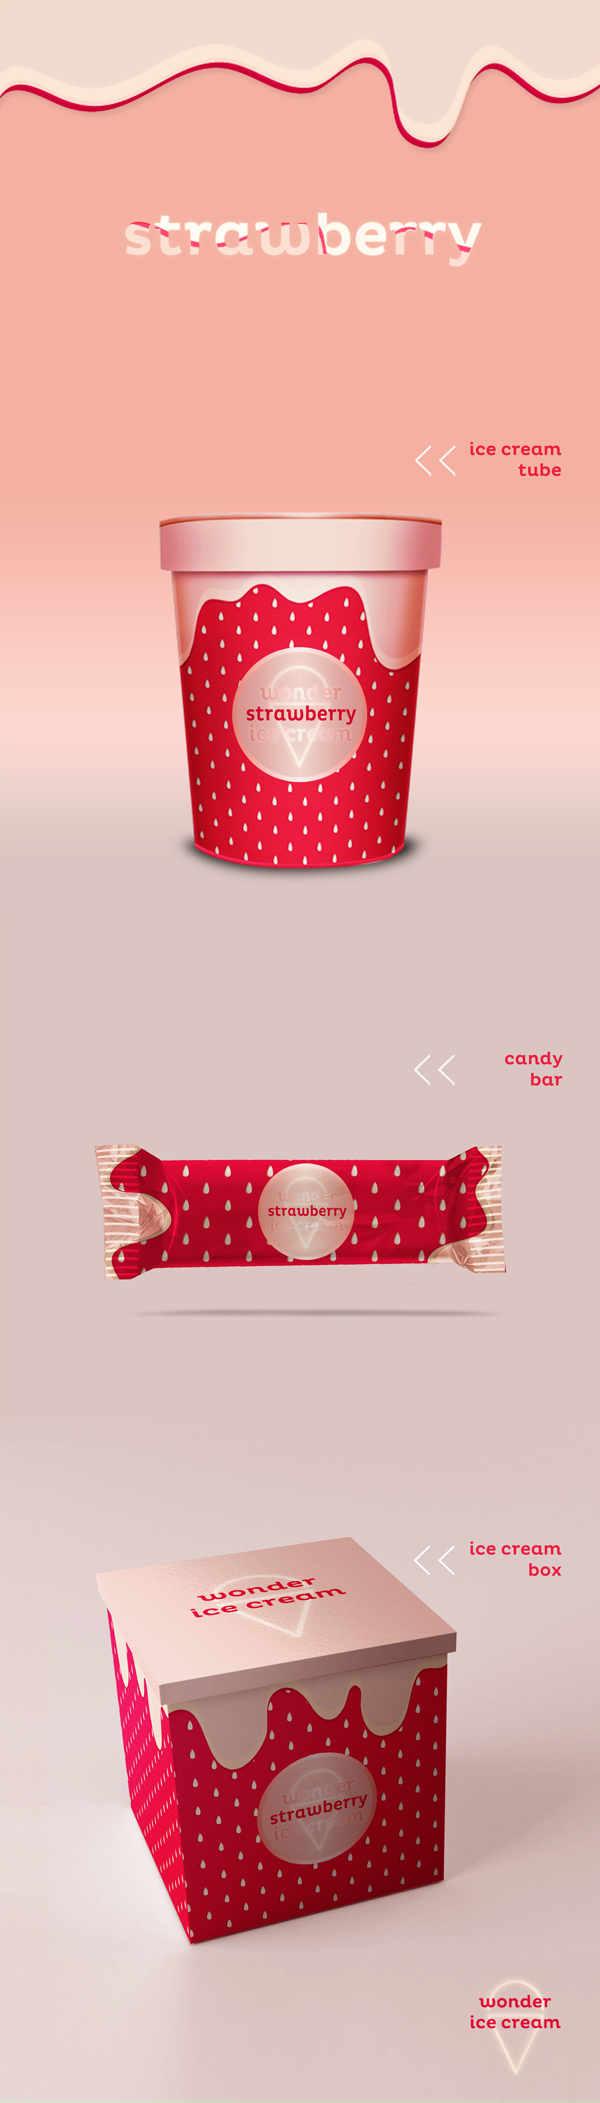 Strawberry_Ice-cream_Candy_Packaging